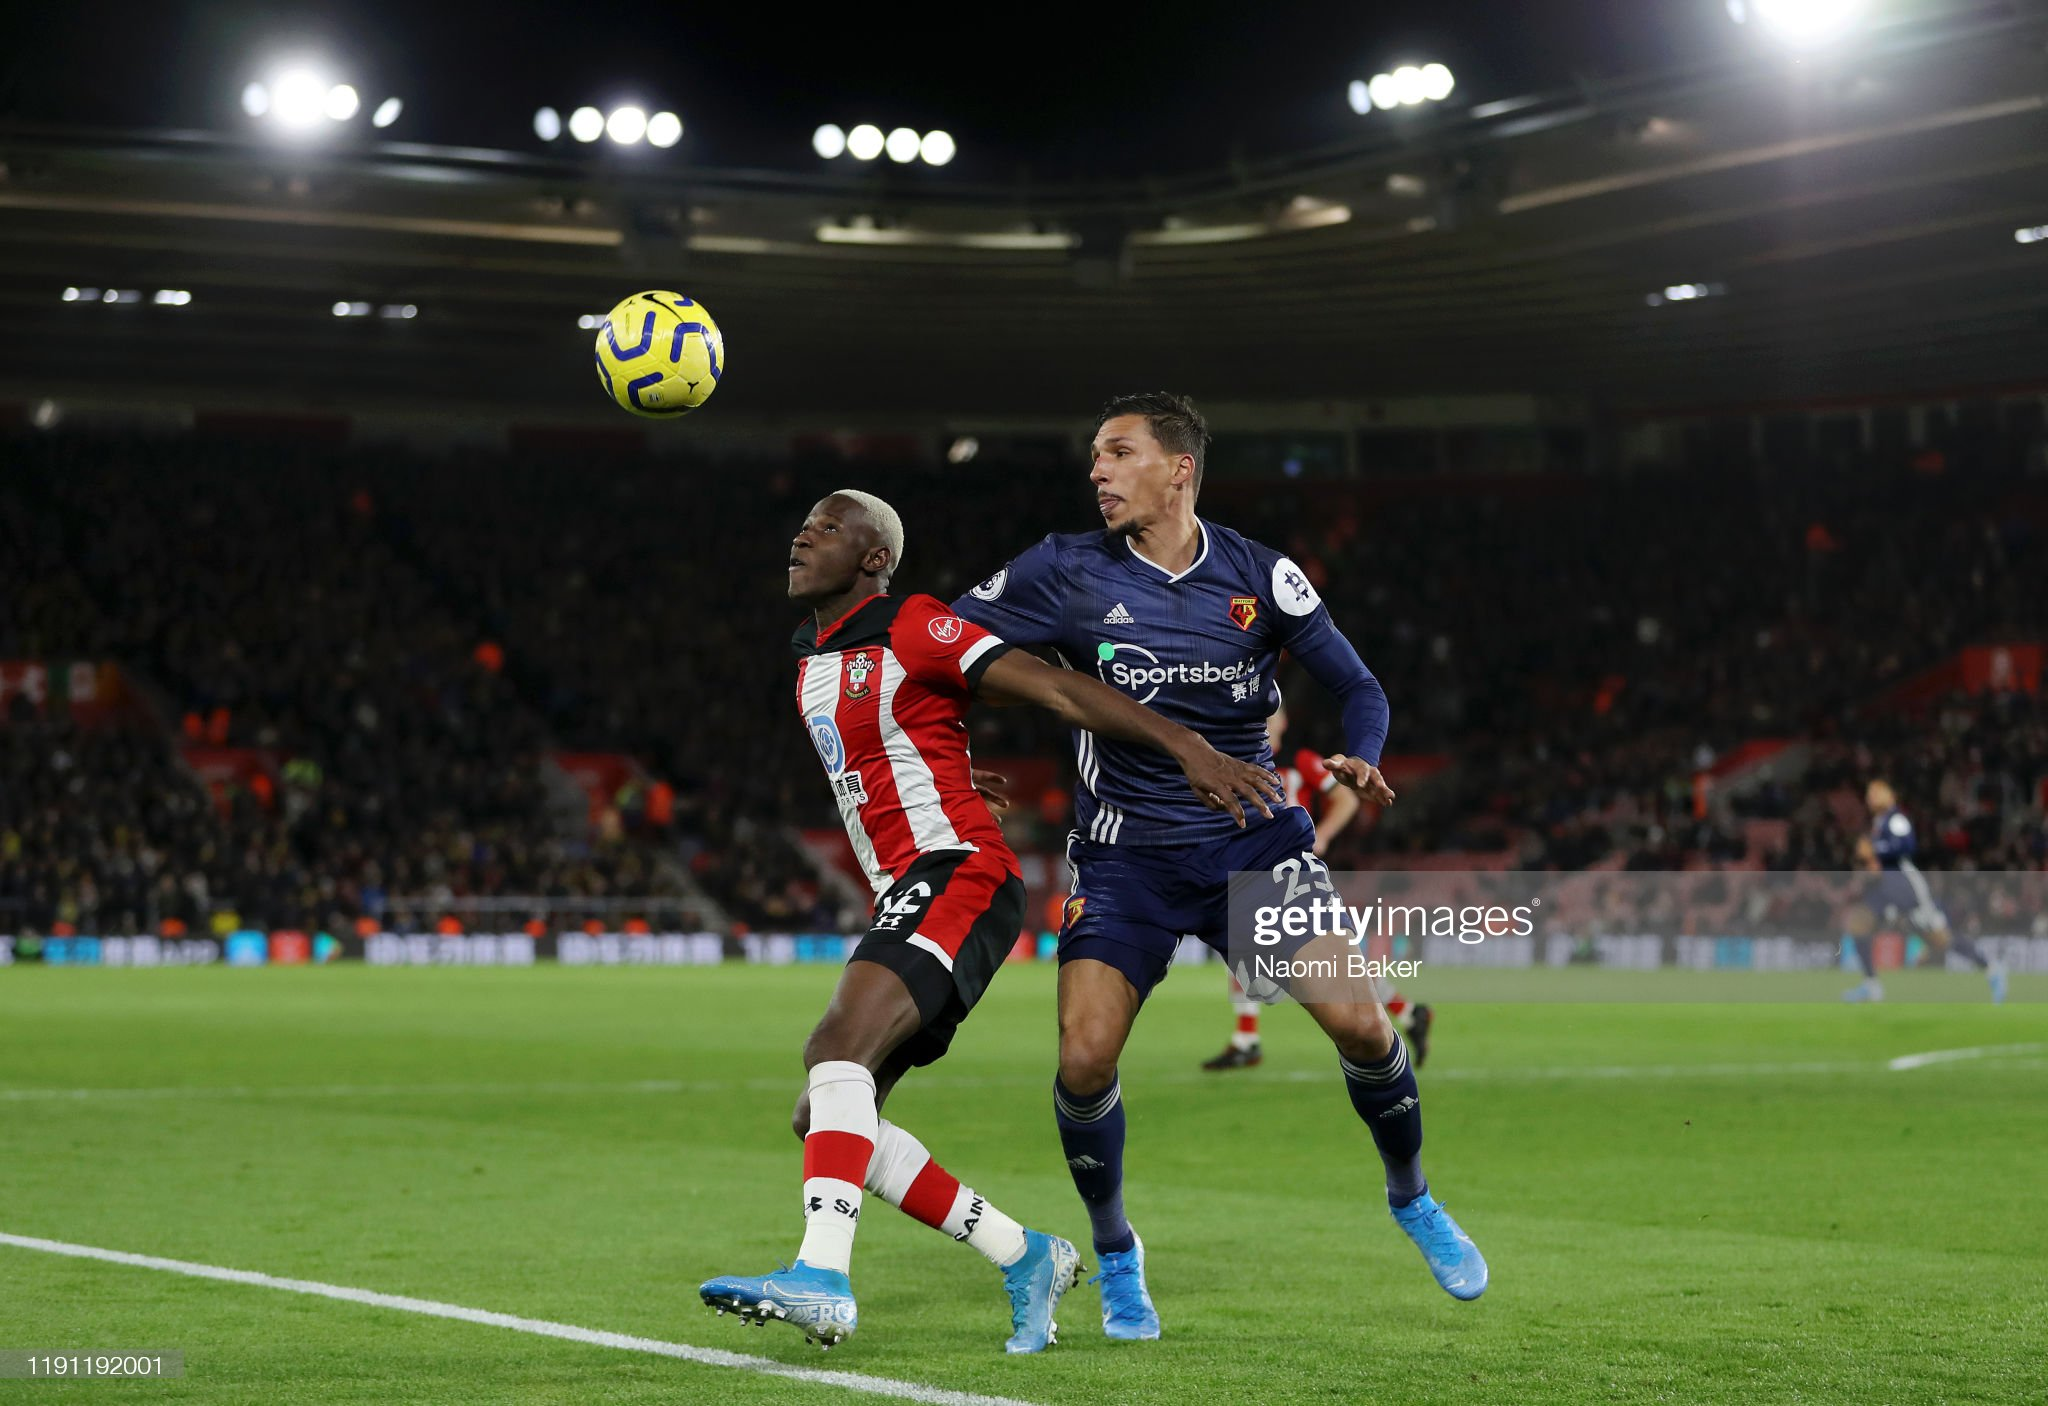 Watford vs Southampton Preview, prediction and odds